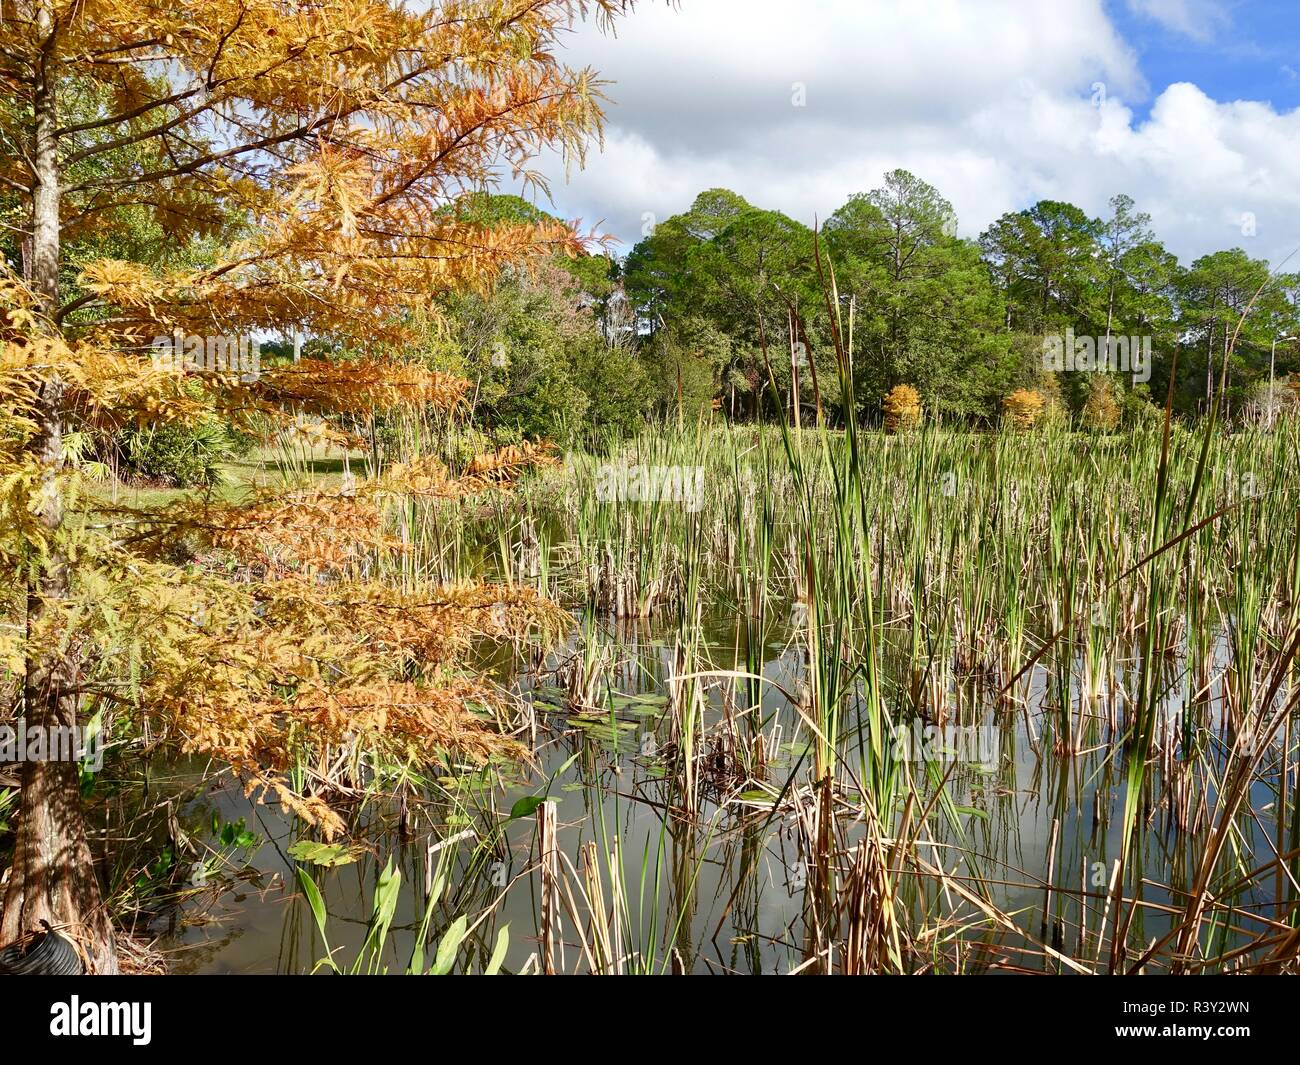 Looking past a colorful cypress tree across a retention pond on a partly cloudy day. Autumn in North Central Florida, USA. - Stock Image